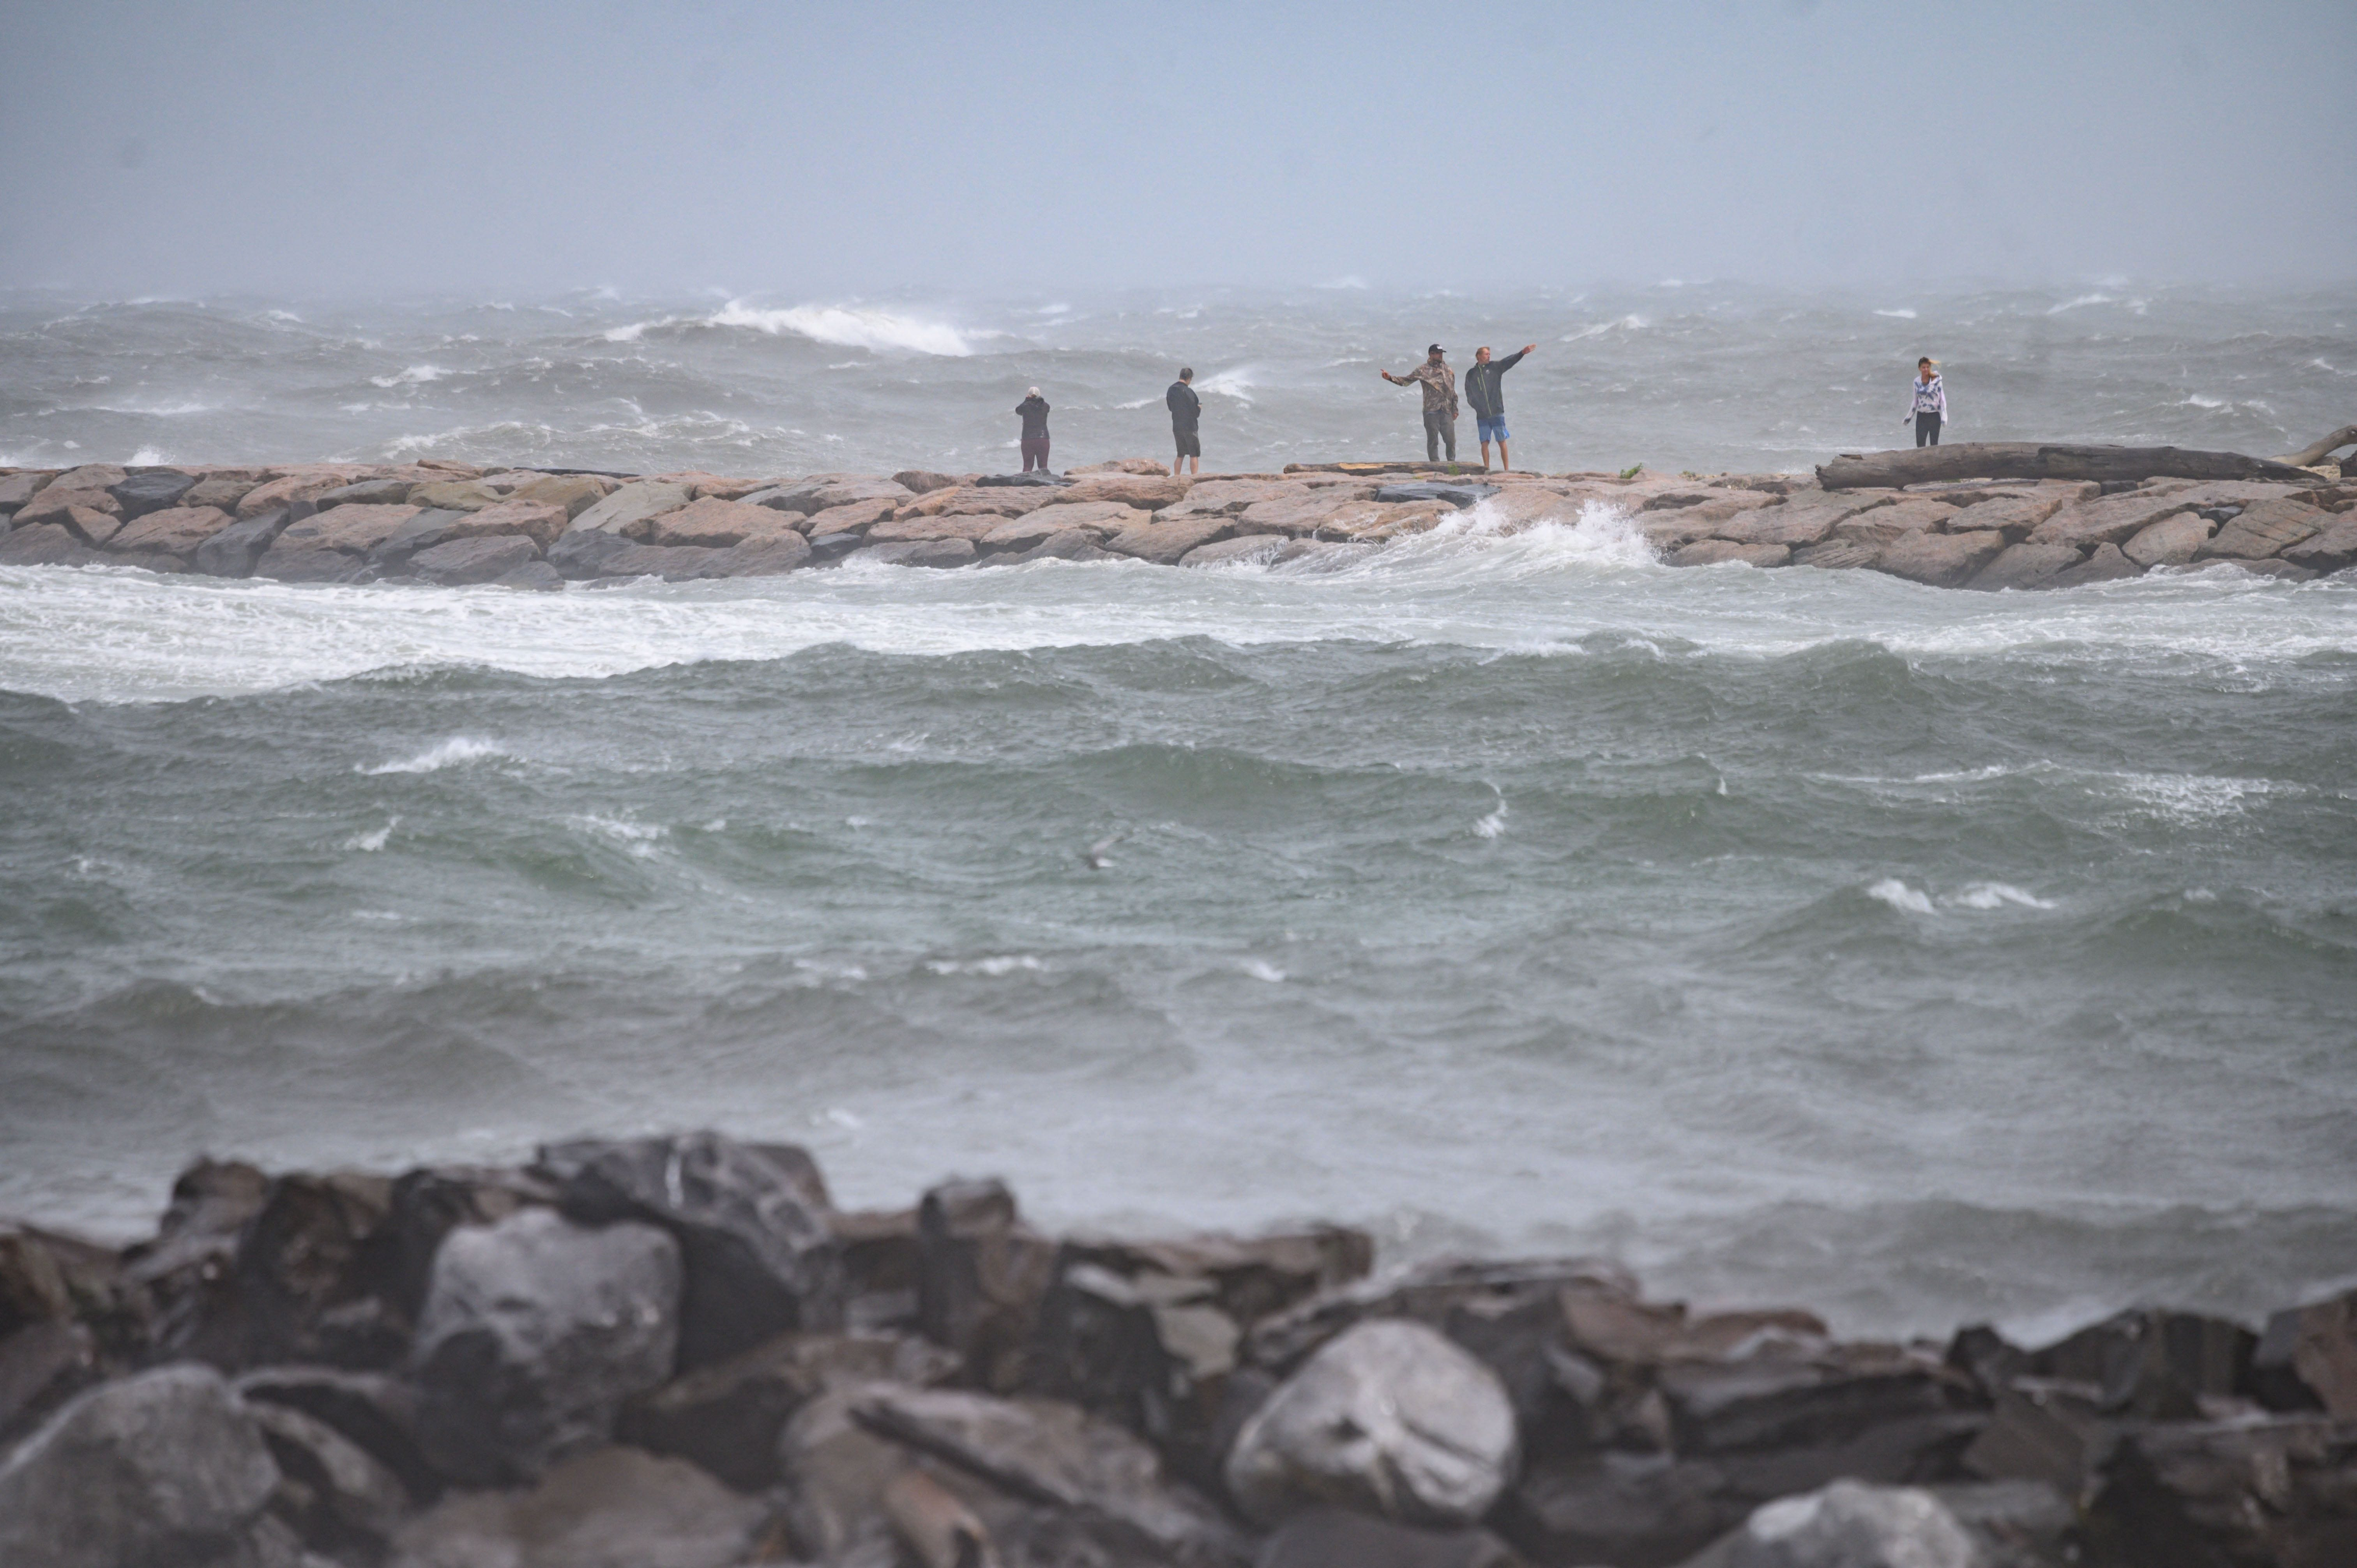 Tropical Storm Henri drenches Northeast after making landfall in coastal Rhode Island